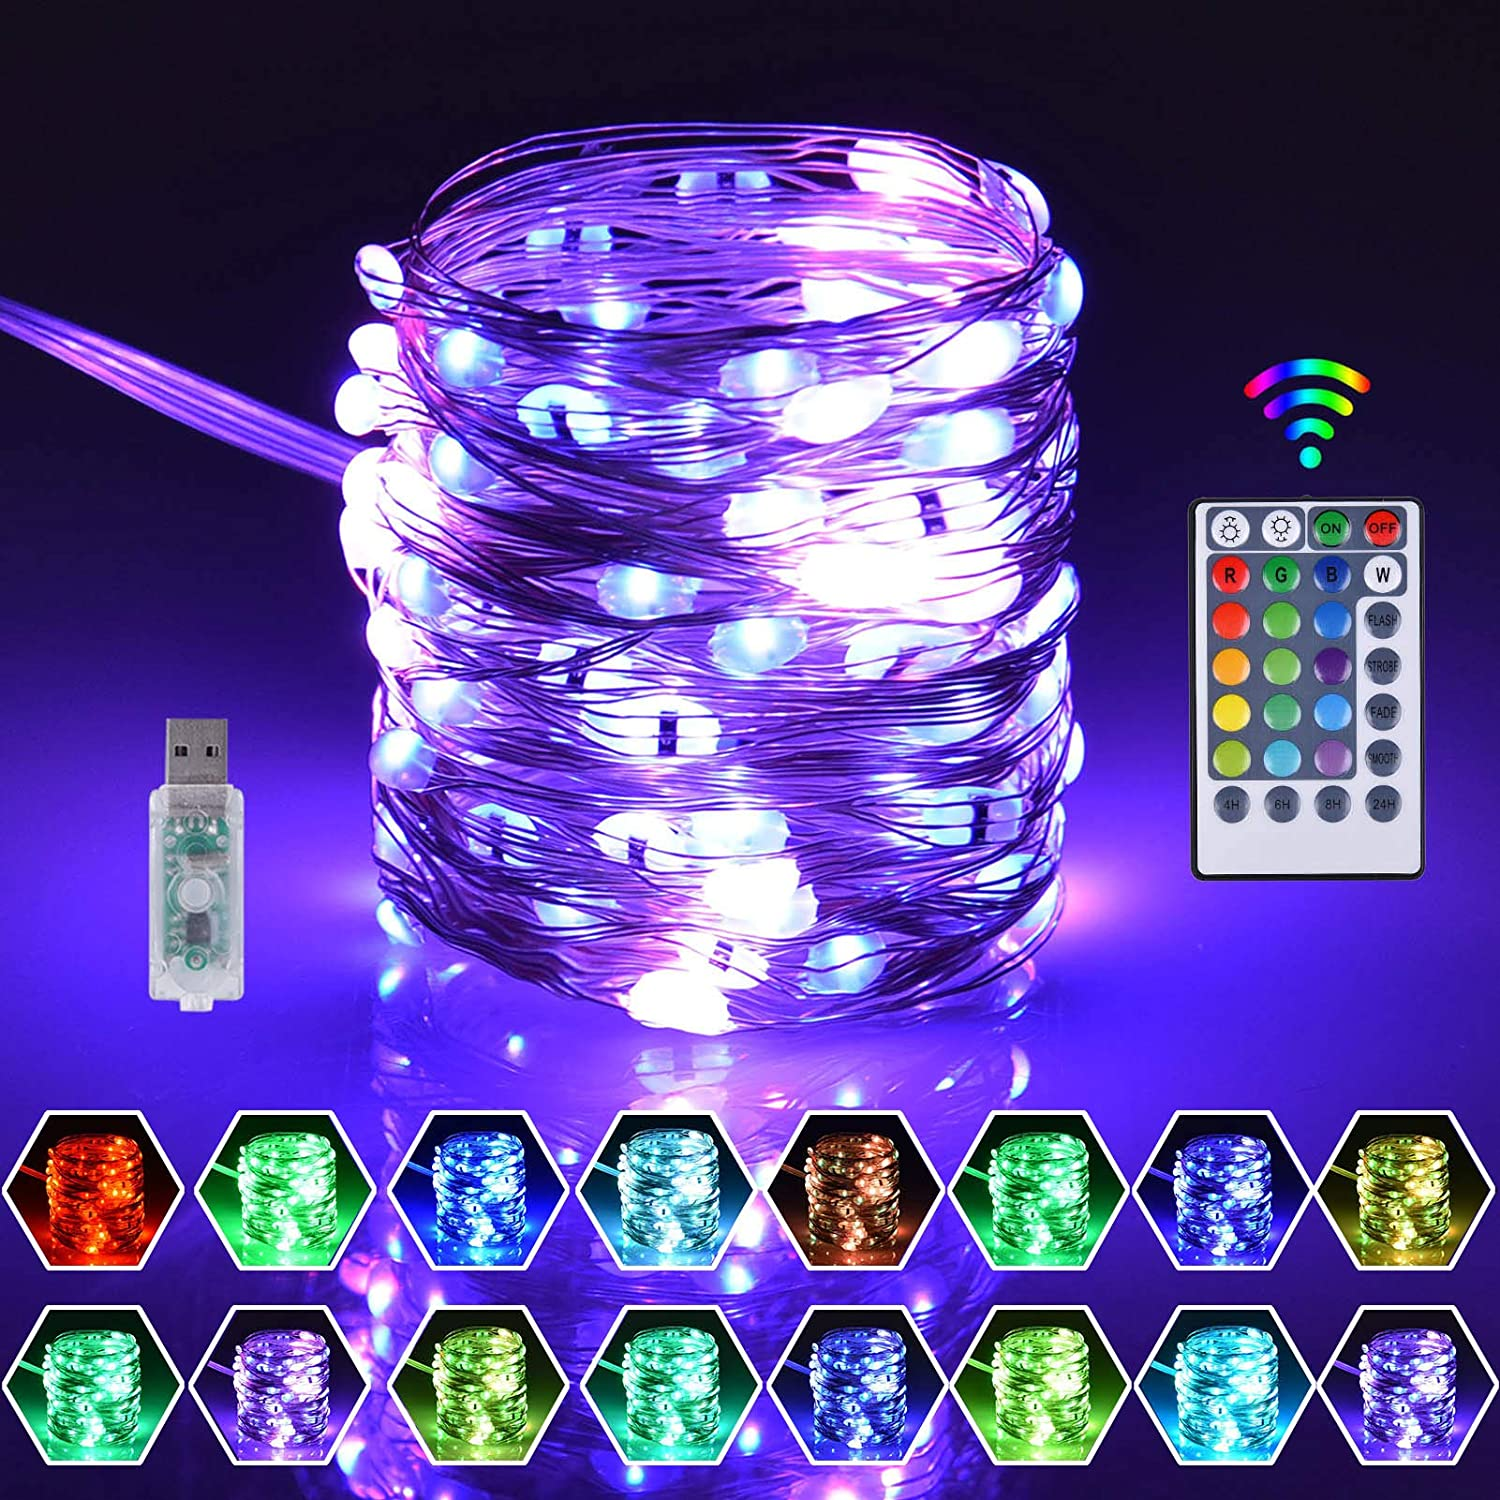 Pixfairy 16 Color Changing Fairy String Lights, LED String Lights with USB Remote Control, Rainbow Backdrop, 4 Lighting Modes Perfect for Christmas, Weddings, Party, Garden Decor